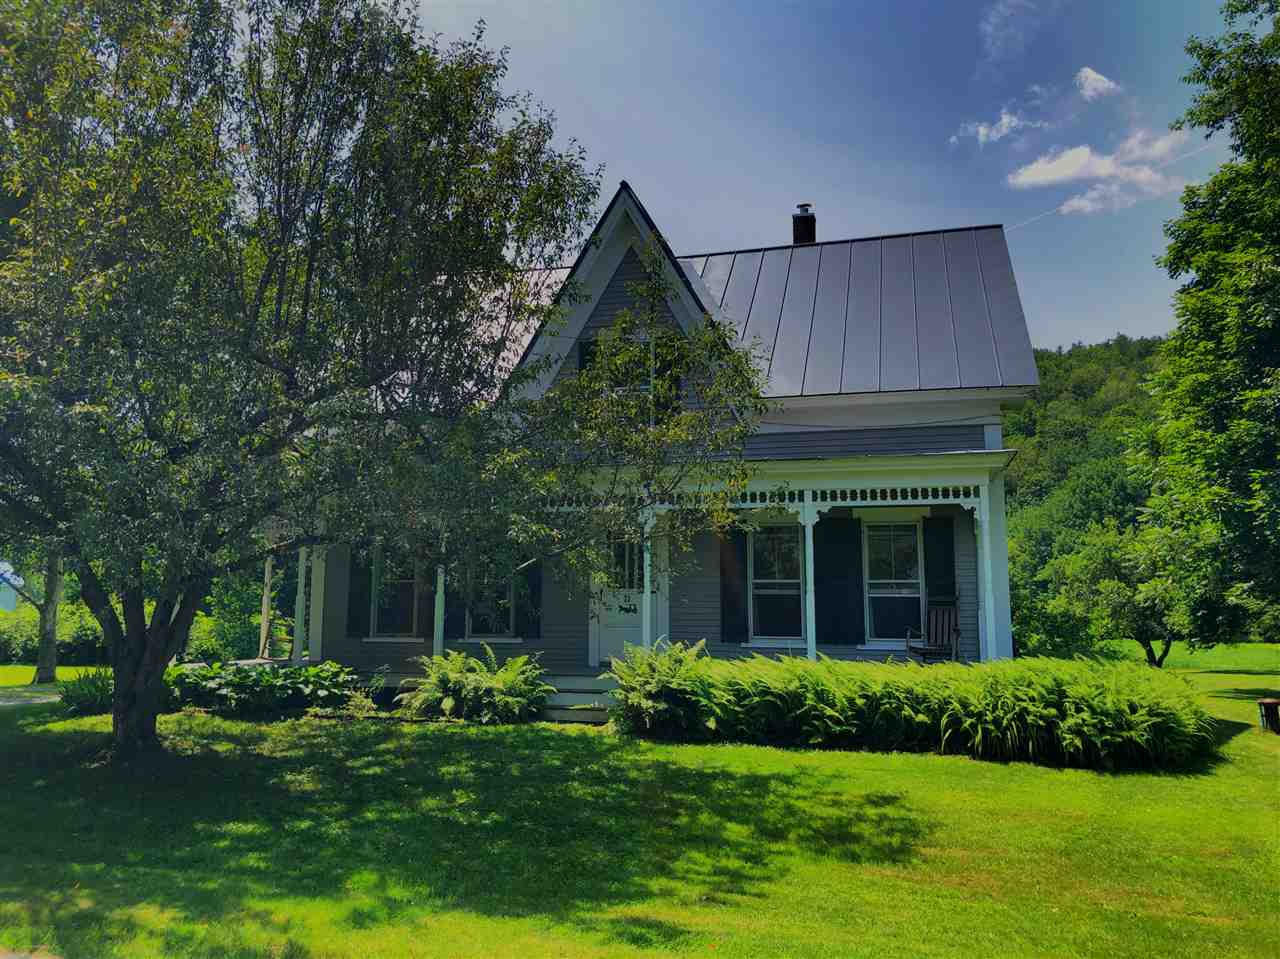 MLS 4738187: 23 Cornish Stage Road, Cornish NH